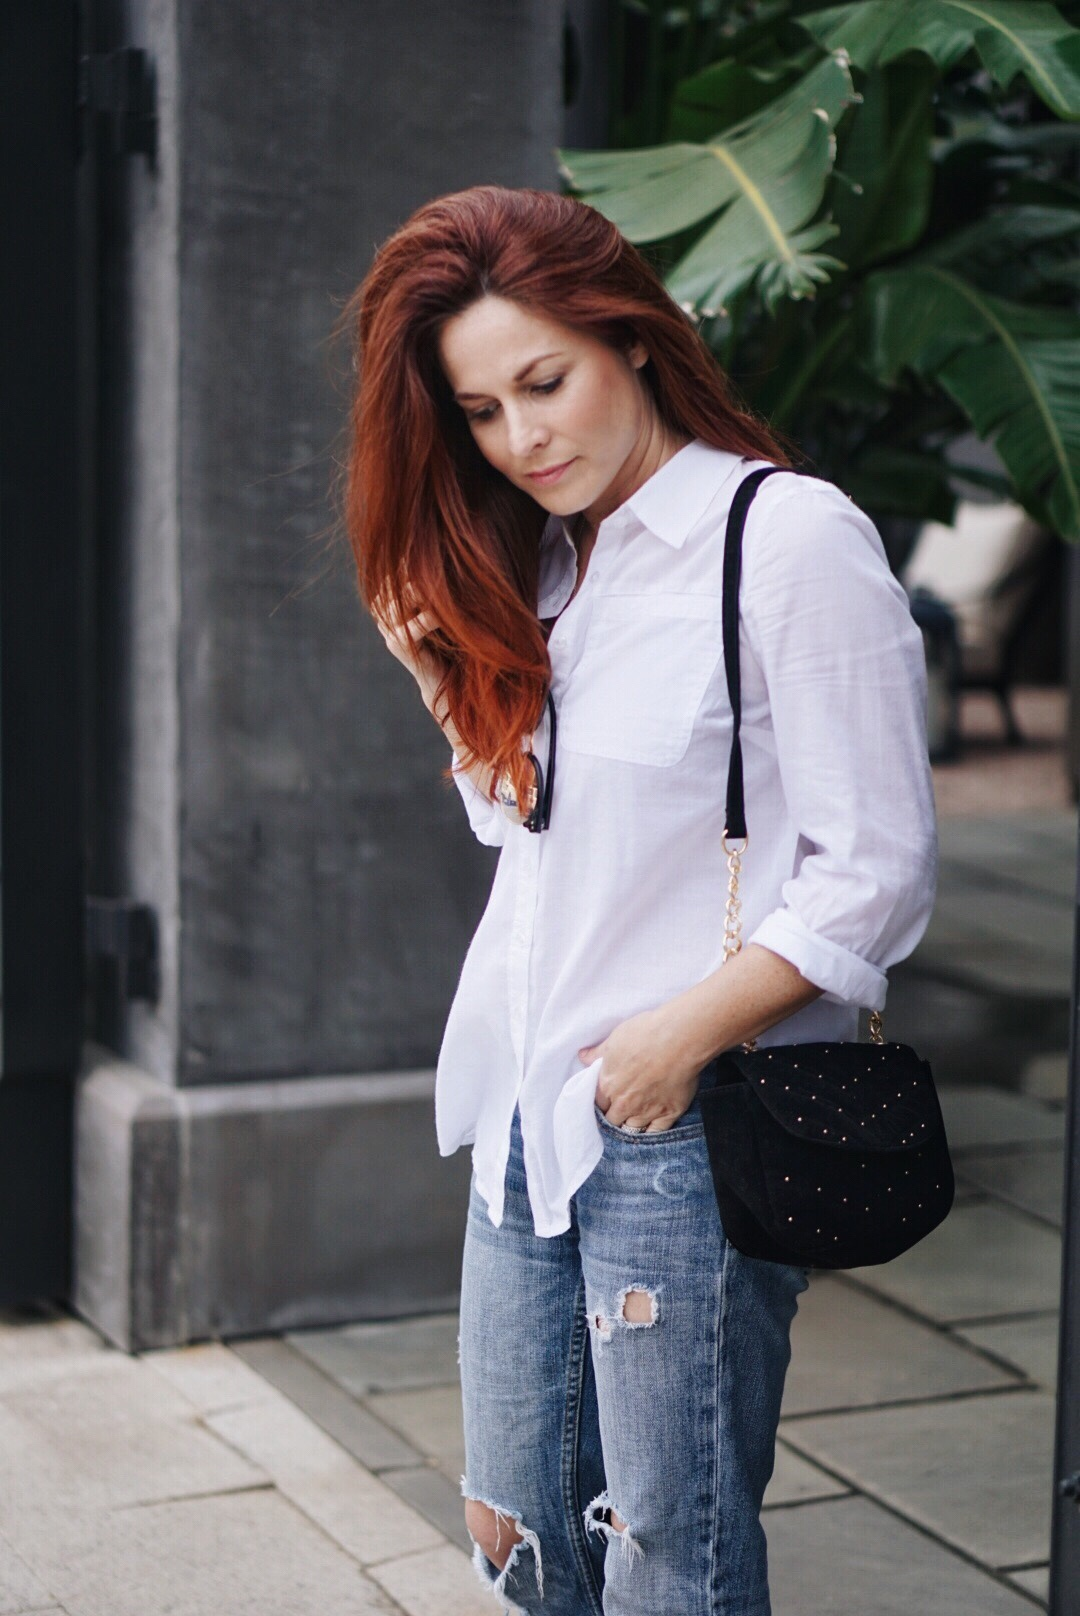 red hair ideas, white oxford, distresses jeans, studded bag, stuck in a style rut, what should I wear